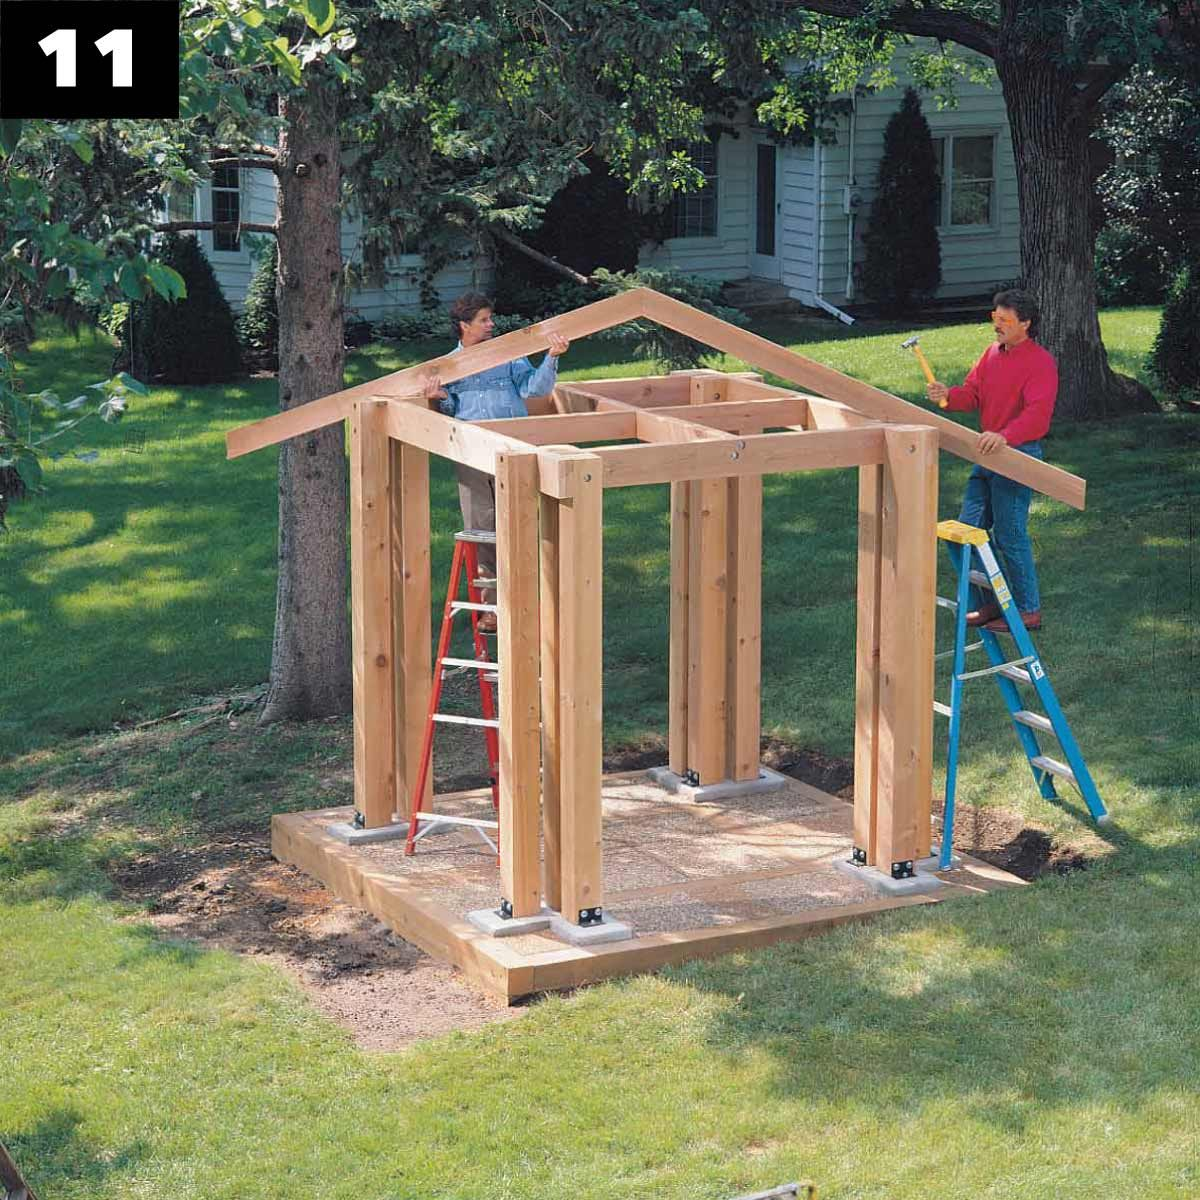 How to Build a Post and Beam Pavilion — The Family Handyman